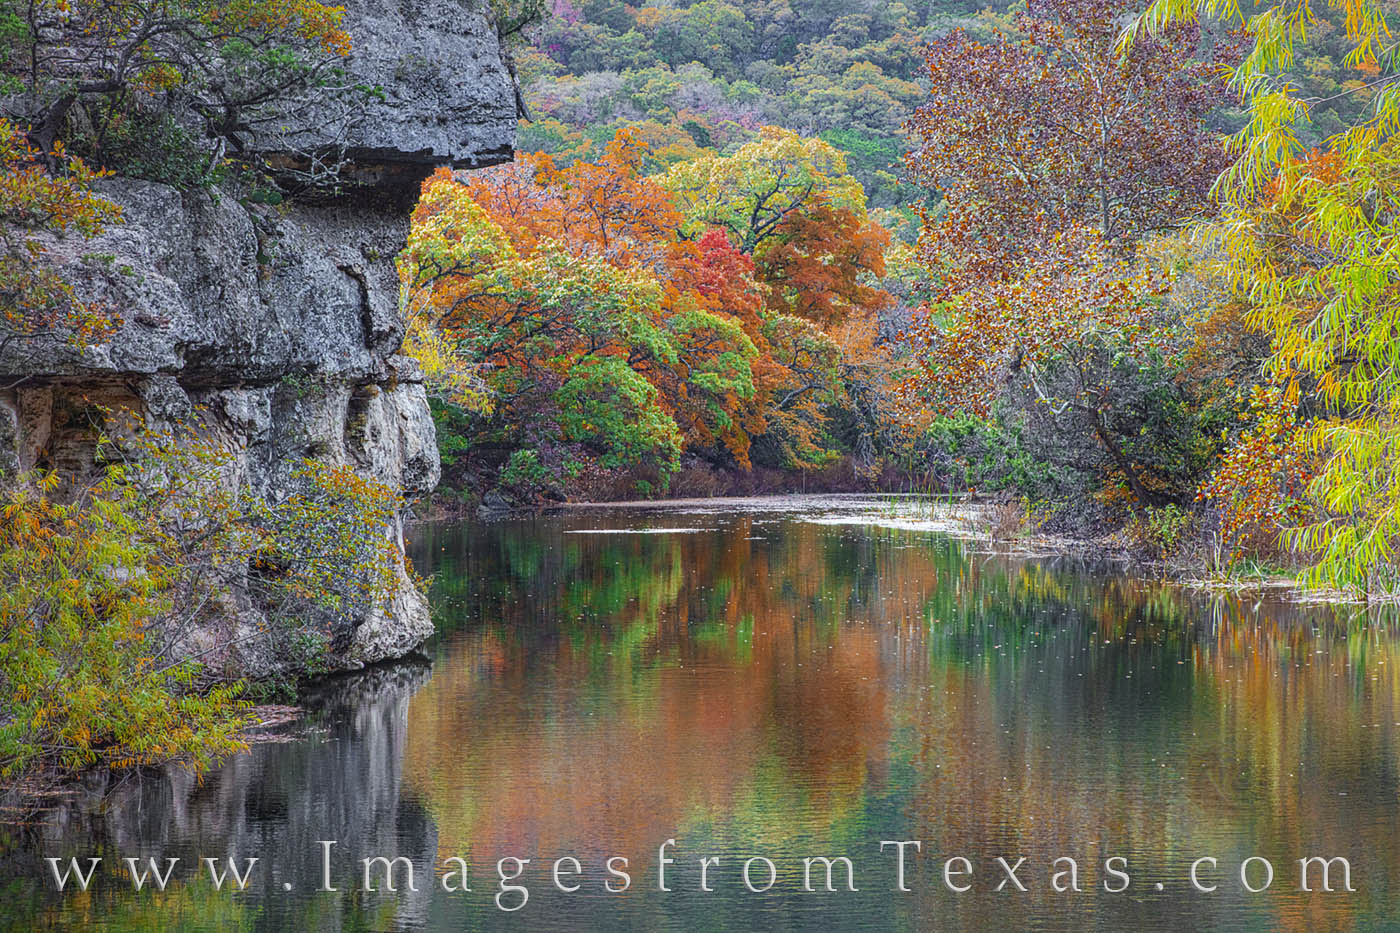 lost maples, east trail, west trail, ponds, fall, autumn, fall colors, texas state parks, maples trees red maple, lost maples prints, autumn prints, fall colors prints